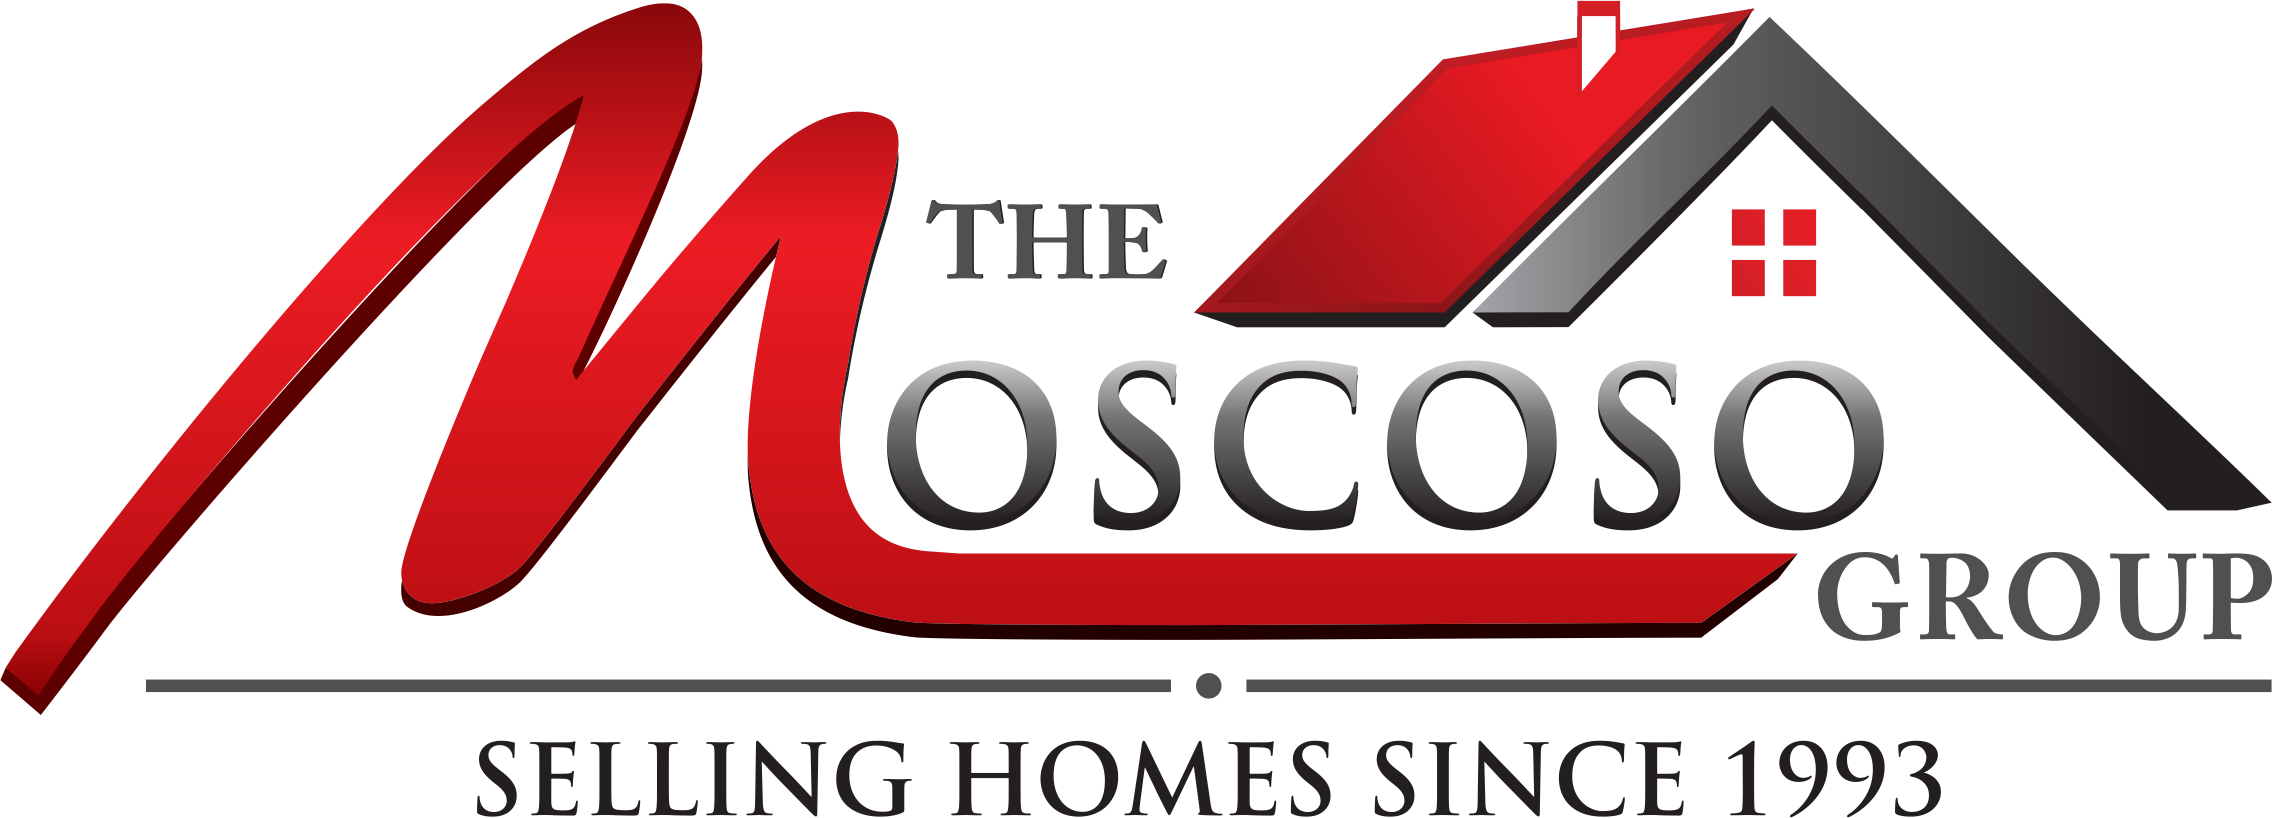 The Moscoso Group - KW logo